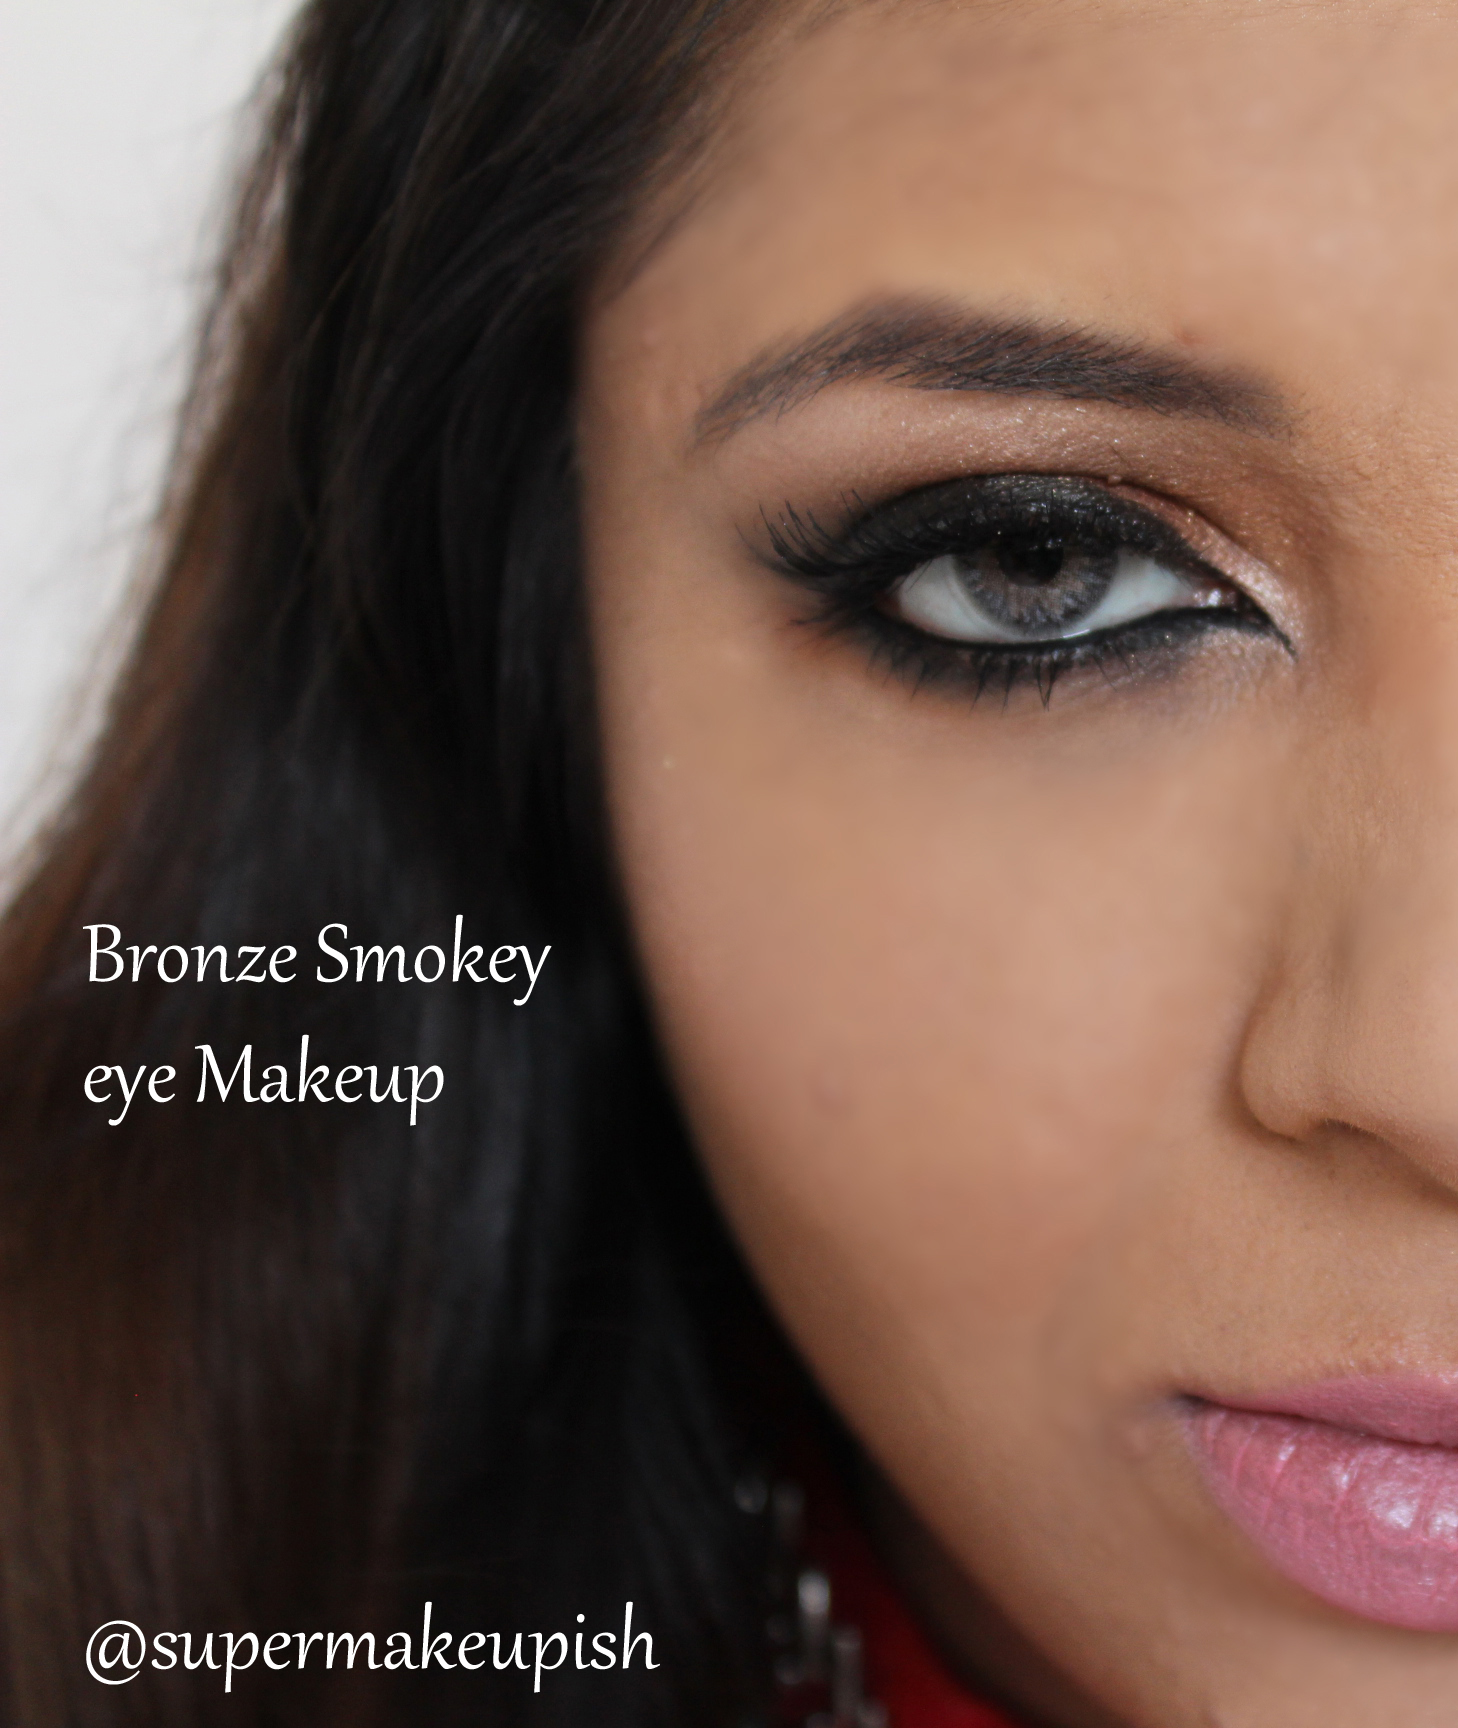 Under 5 Minute makeup : Bronze Smokey eye